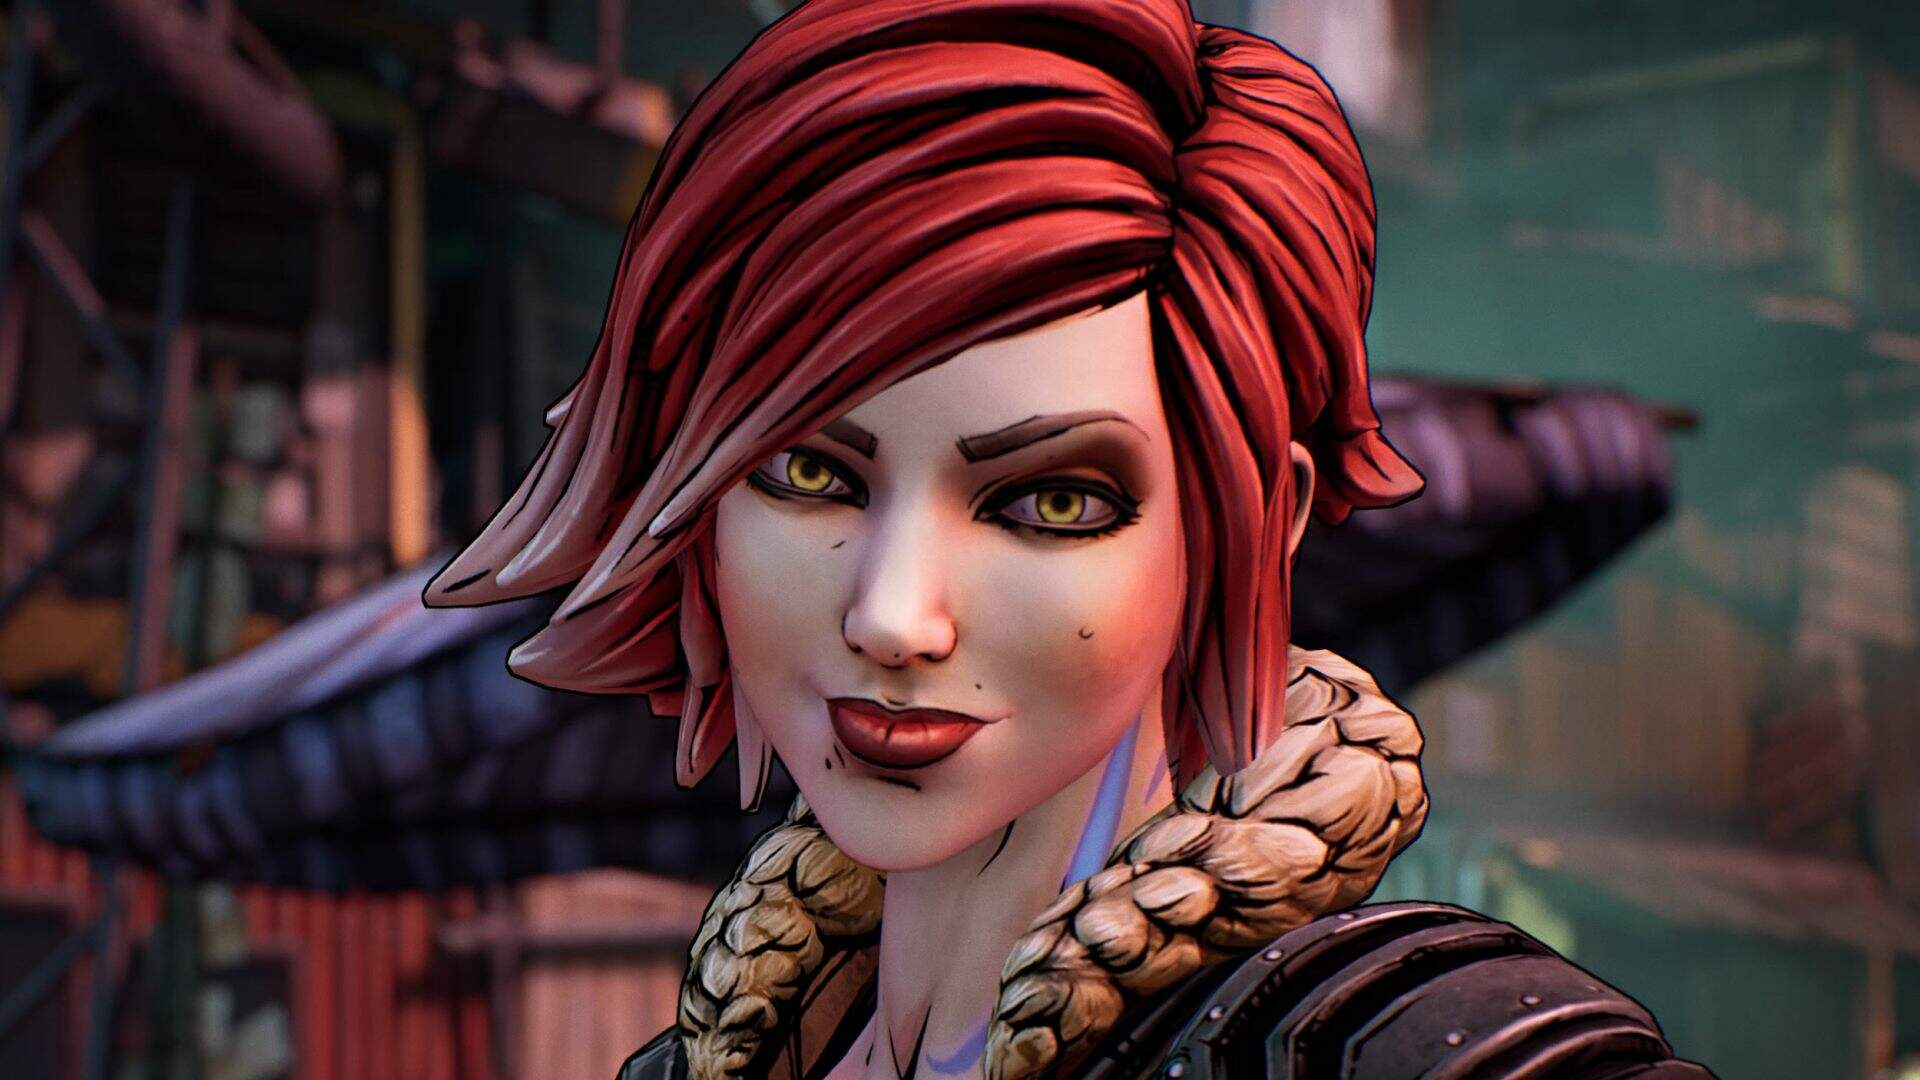 Borderlands 3 Borrows a Surprising Amount From Mass Effect, And It Works